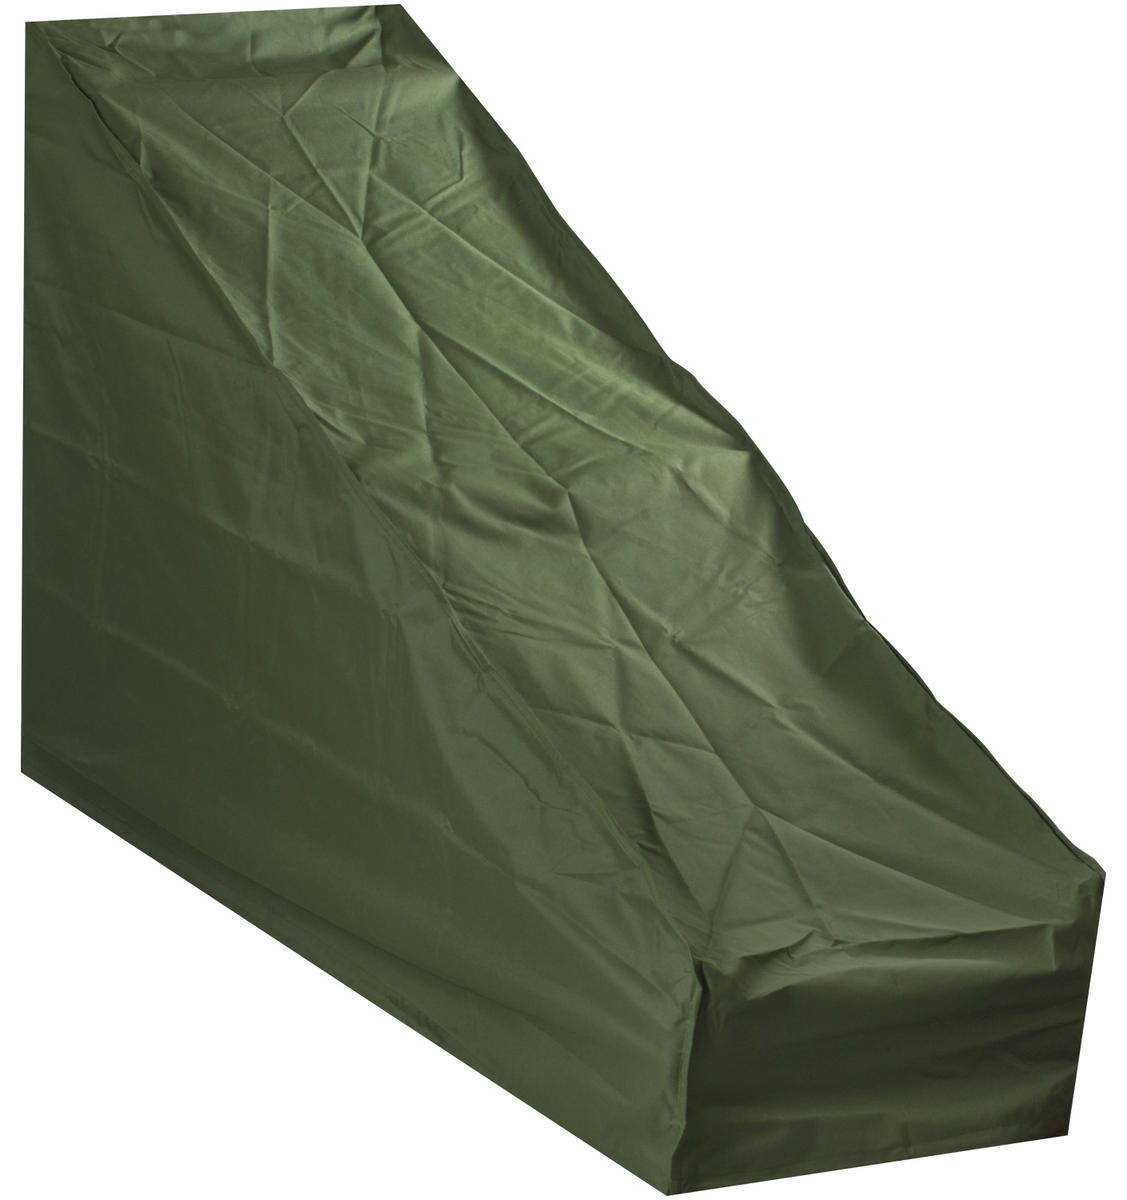 Woodside Large Protective Lawn Mower Cover GREEN